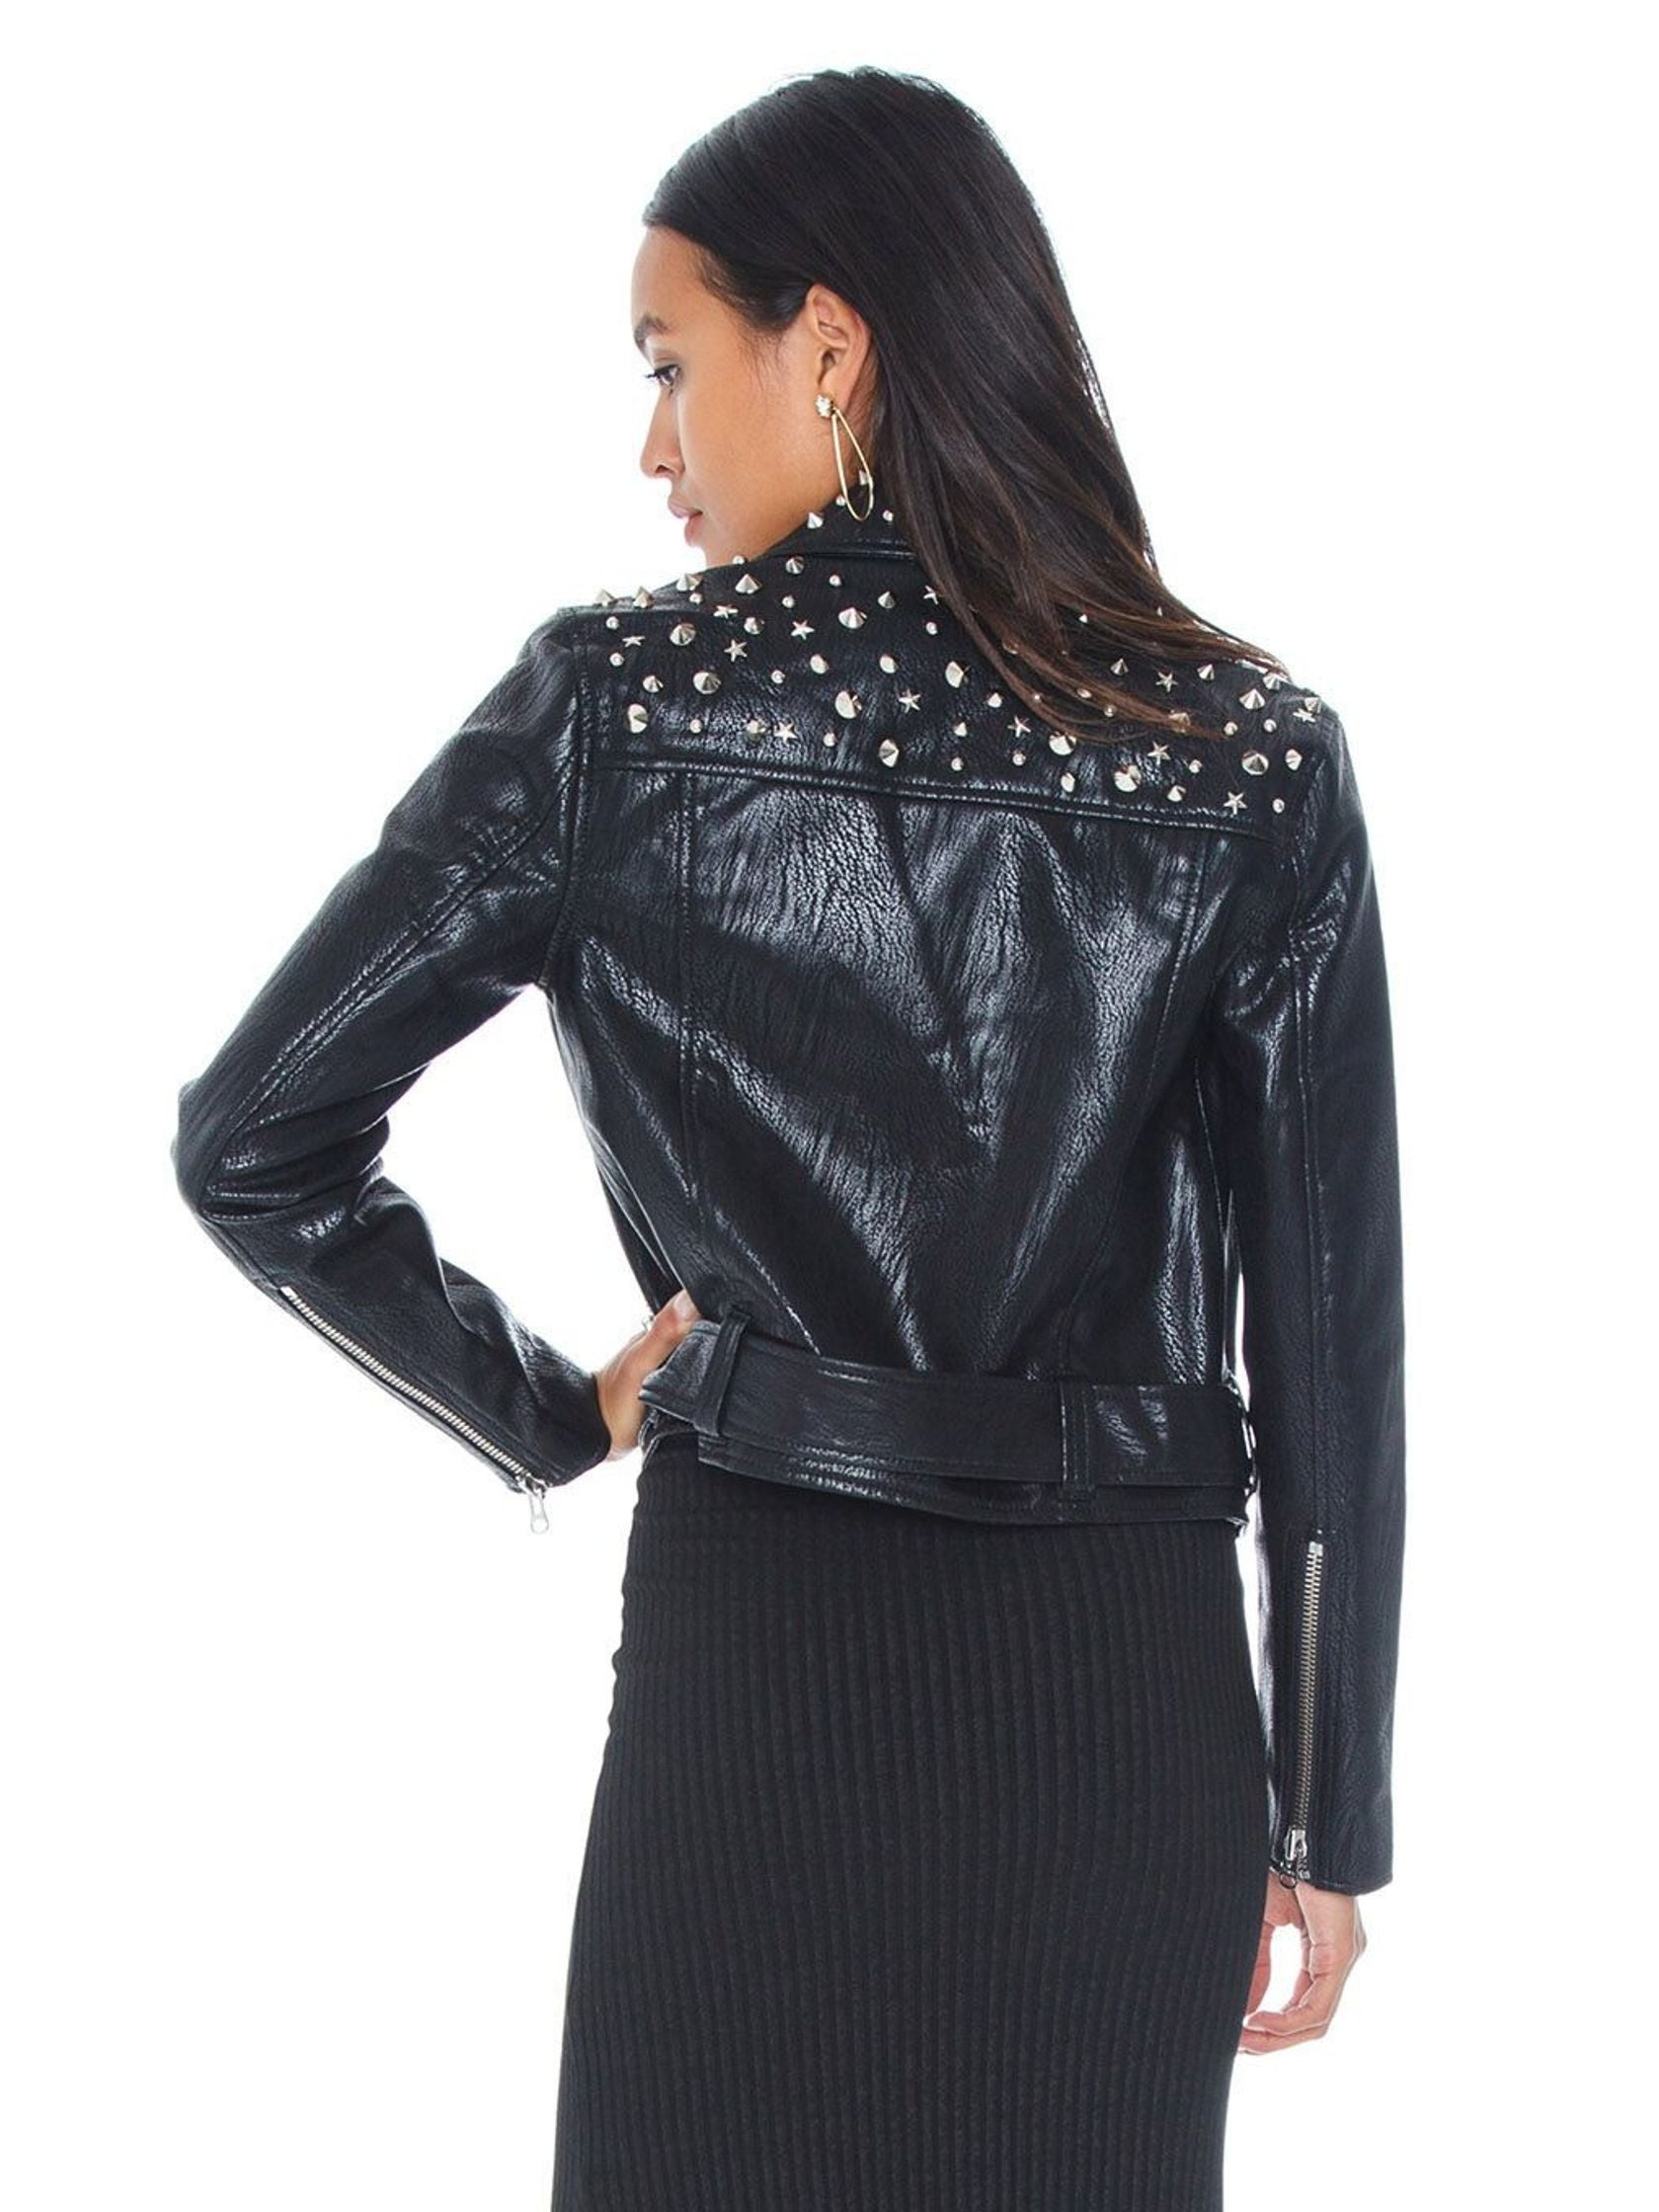 Women outfit in a jacket rental from PISTOLA called Tracy Cropped Moto Jacket